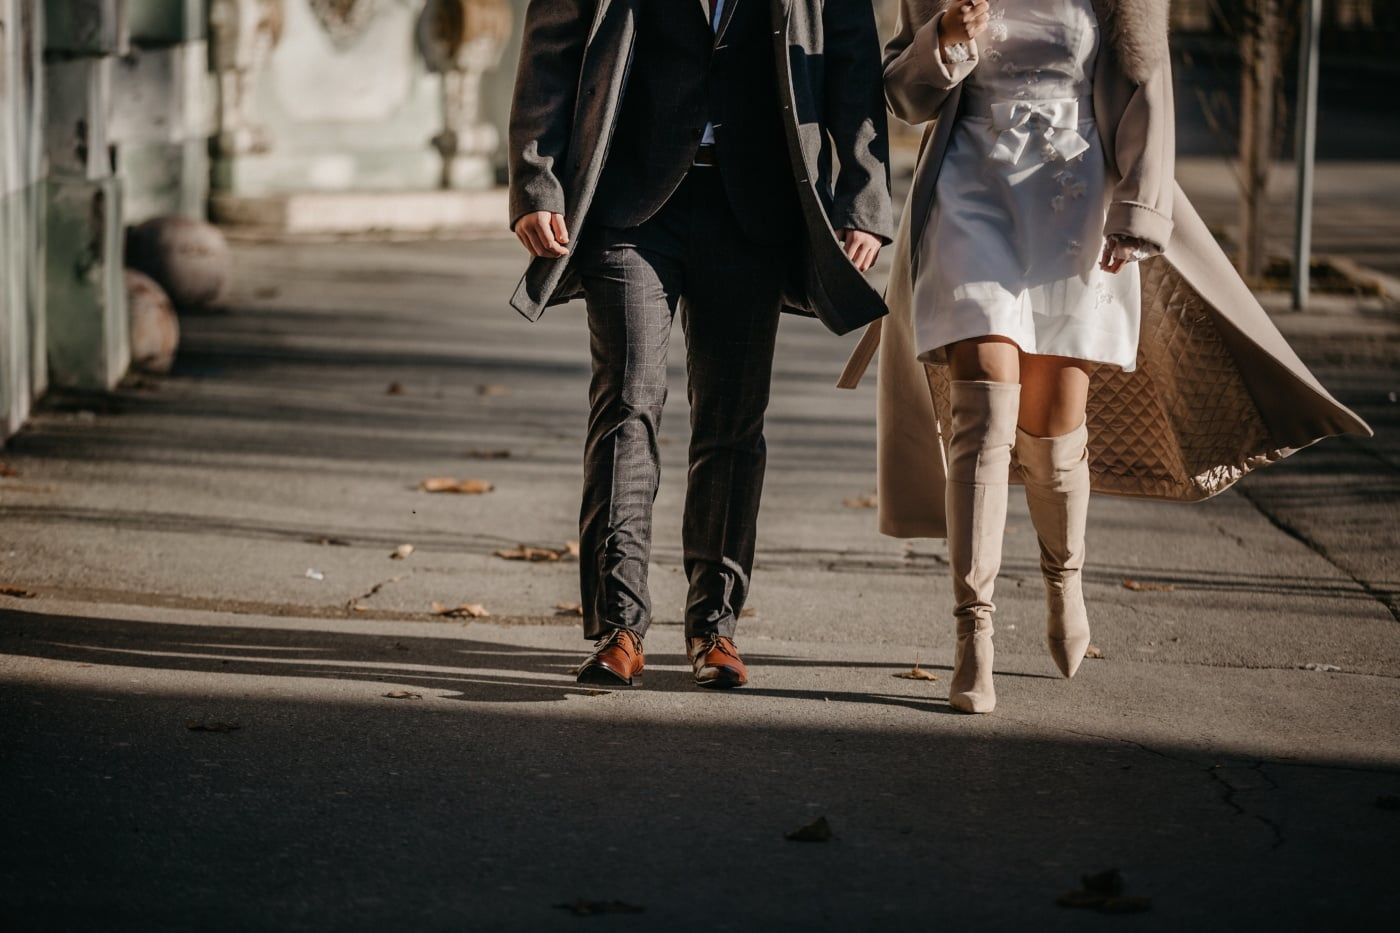 business, outfit, fashion, man, businesswoman, walking, shoes, girl, people, street